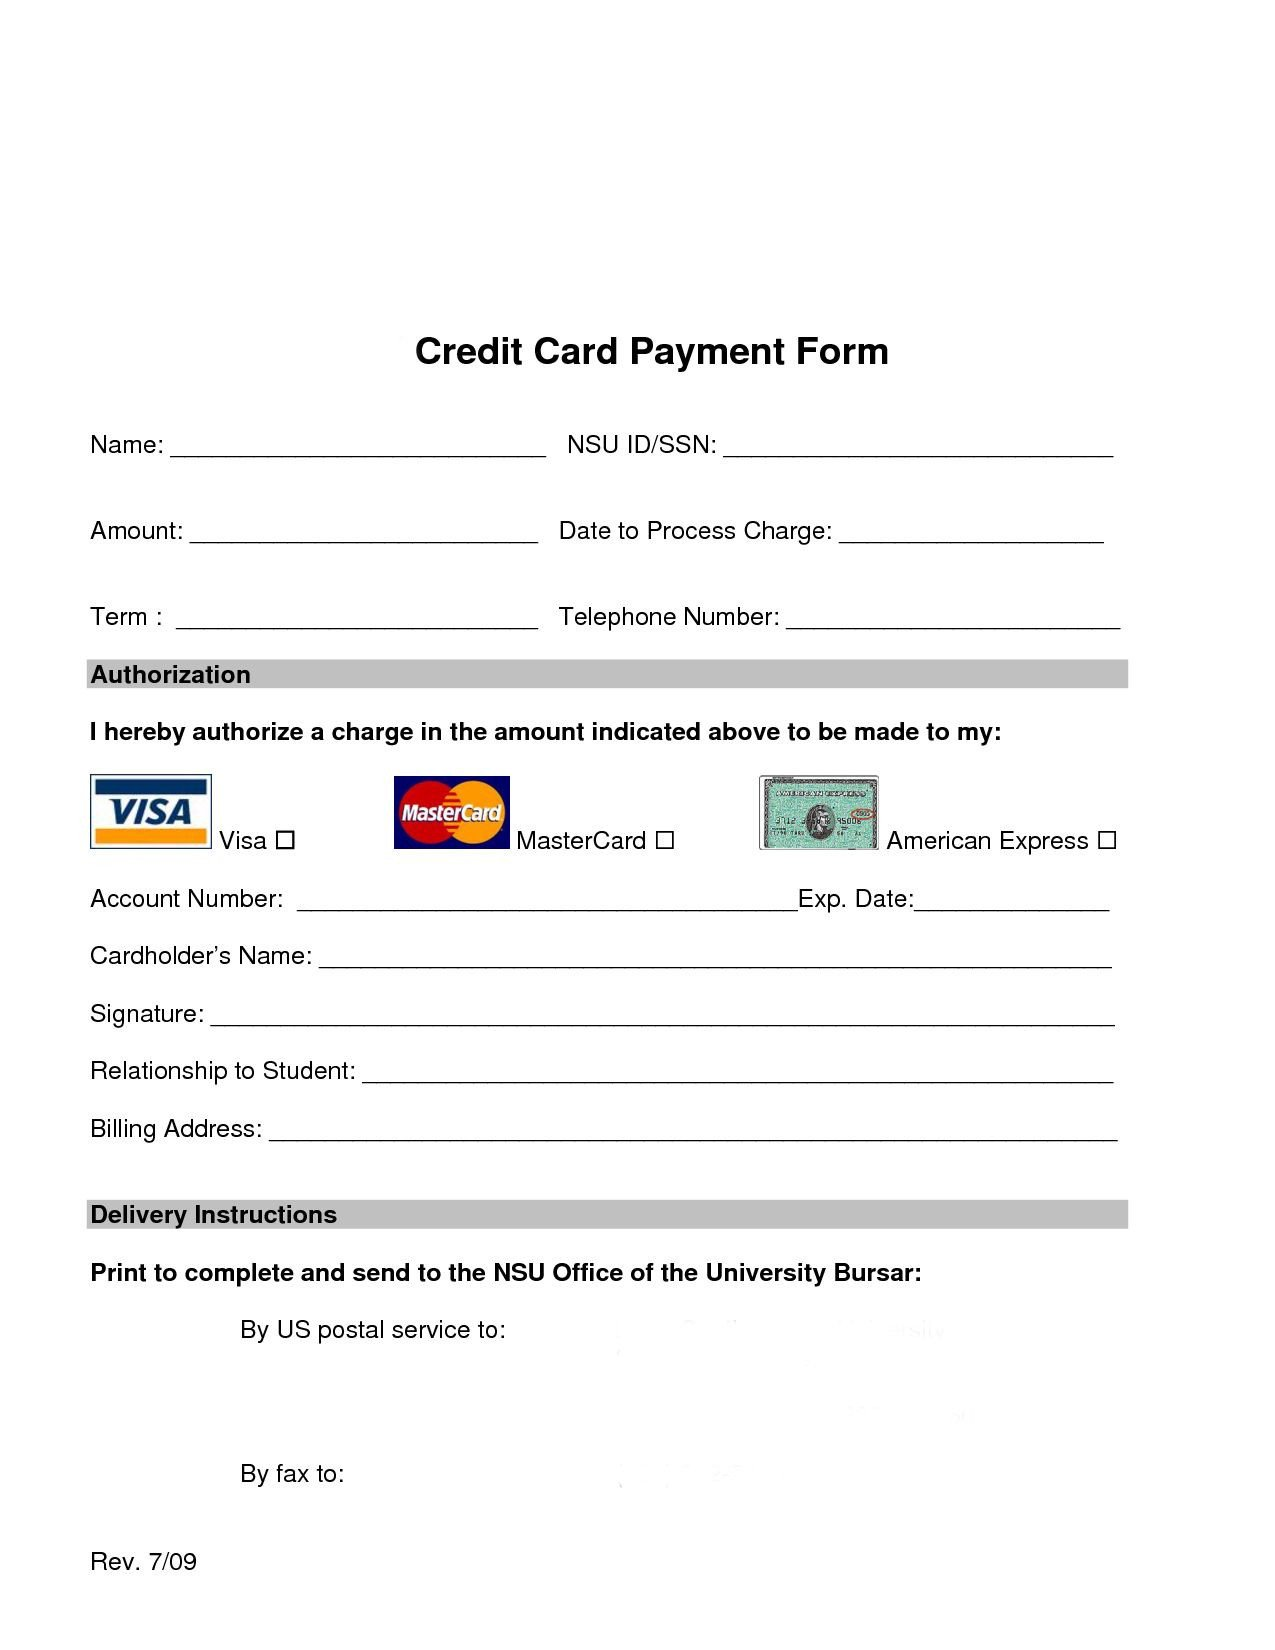 Credit Card Payment form Template Credit Card Processing form Web Design